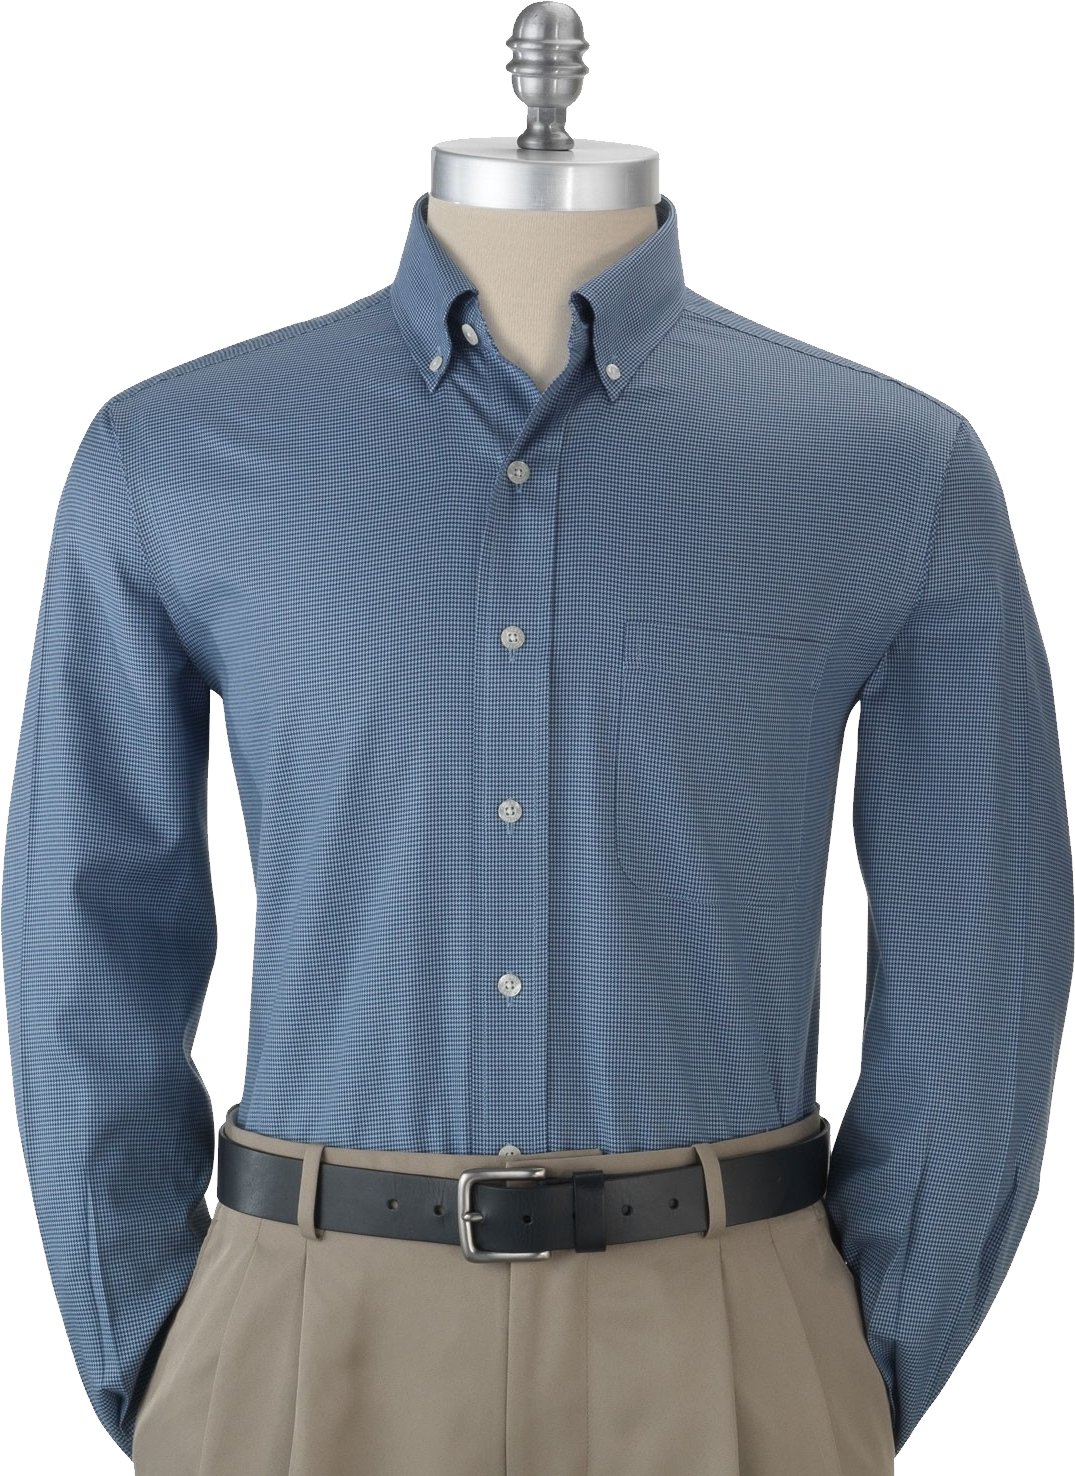 Dress Shirt PNG Transparent Photo